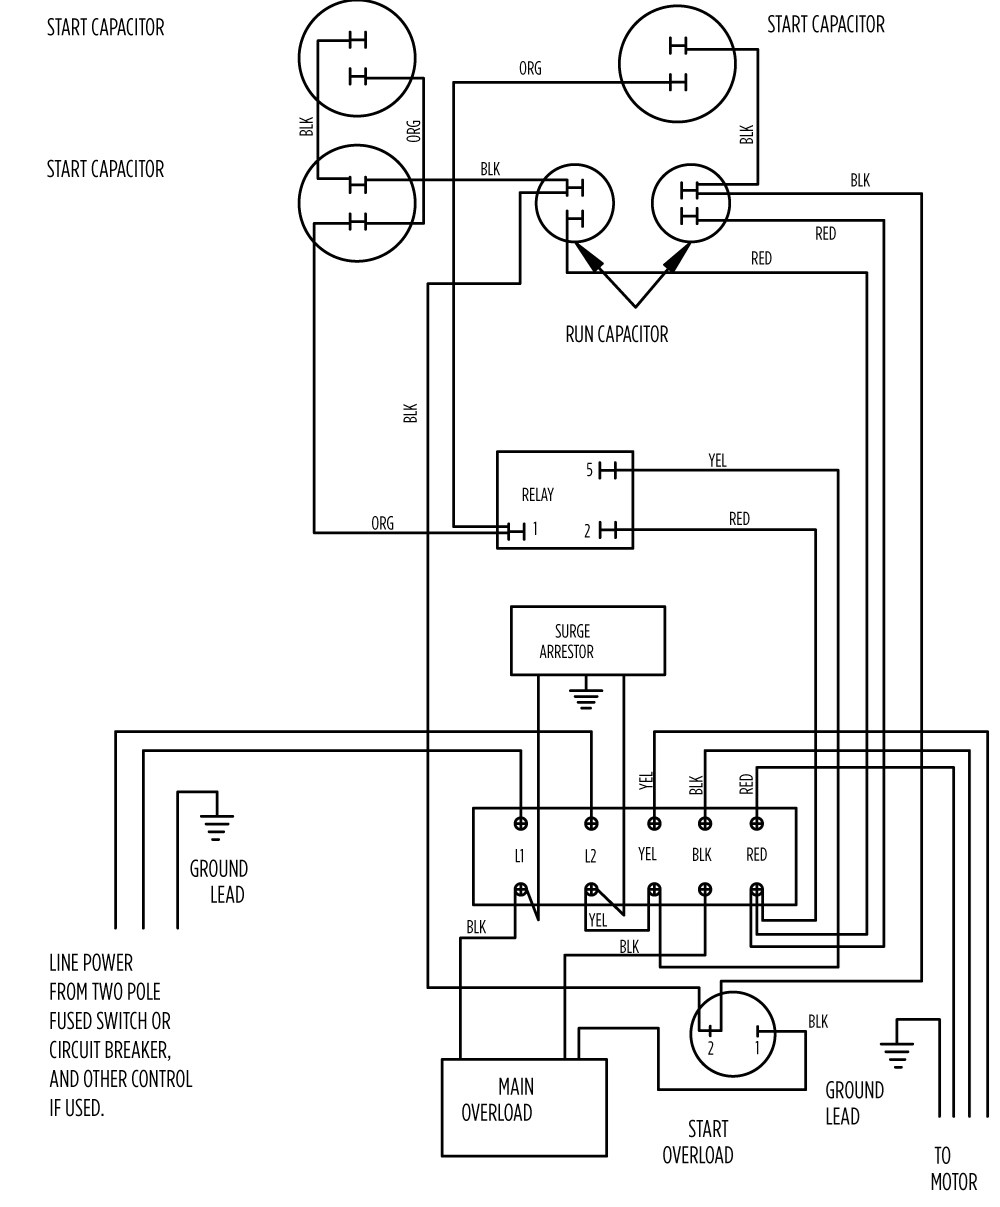 10 hp standard 282 202 9210 or 282 202 9230_aim gallery?format=jpg&quality=80 aim manual page 57 single phase motors and controls motor electrical control wiring diagrams at mr168.co